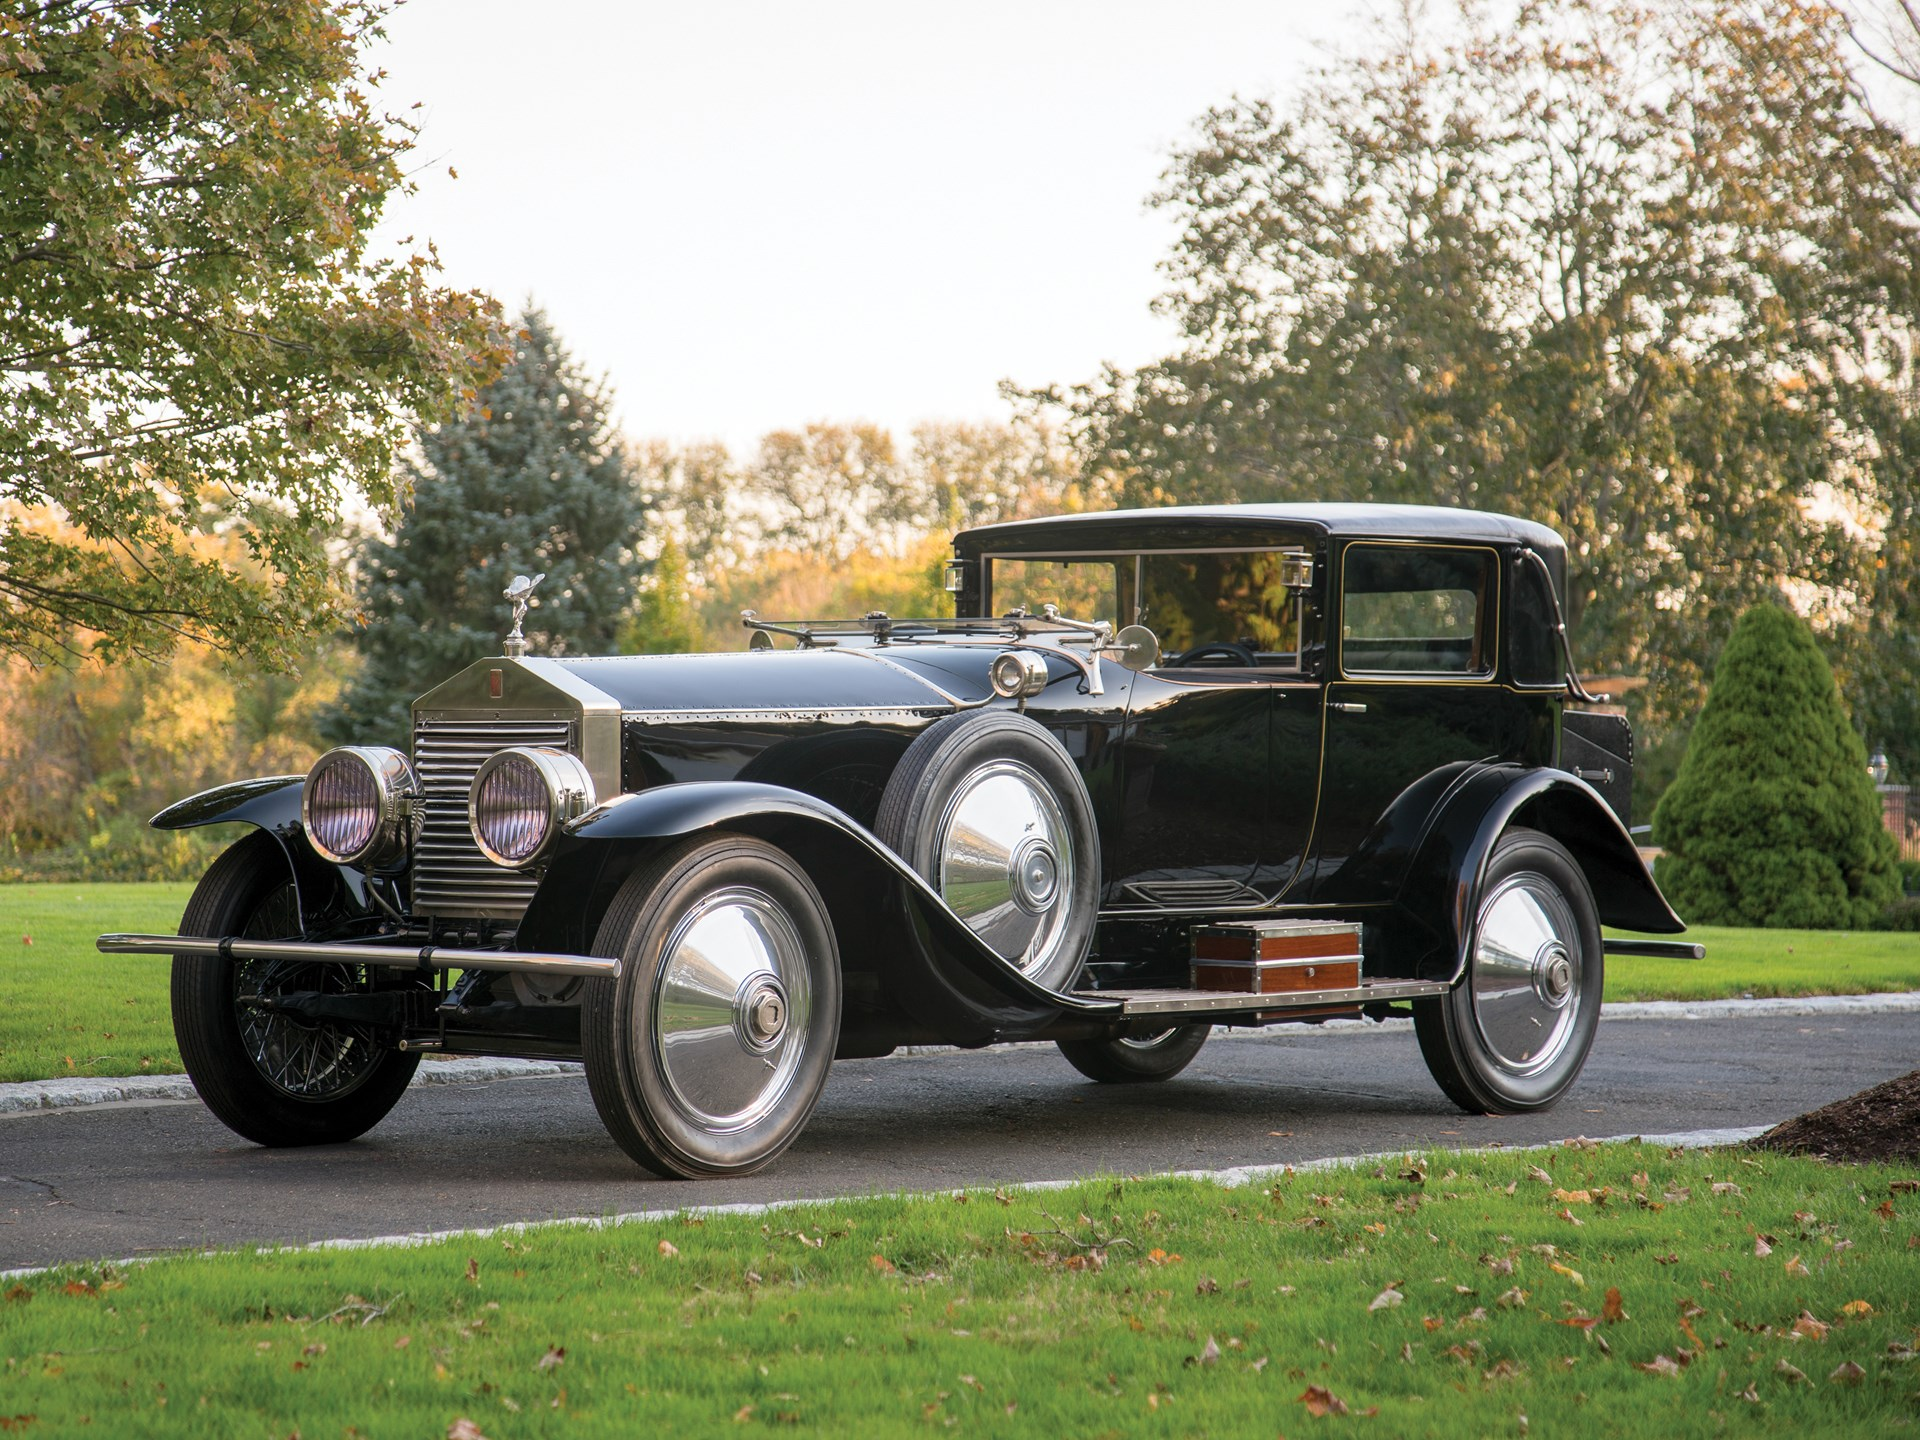 1923 Rolls-Royce Silver Ghost Riviera Town Car by Brewster